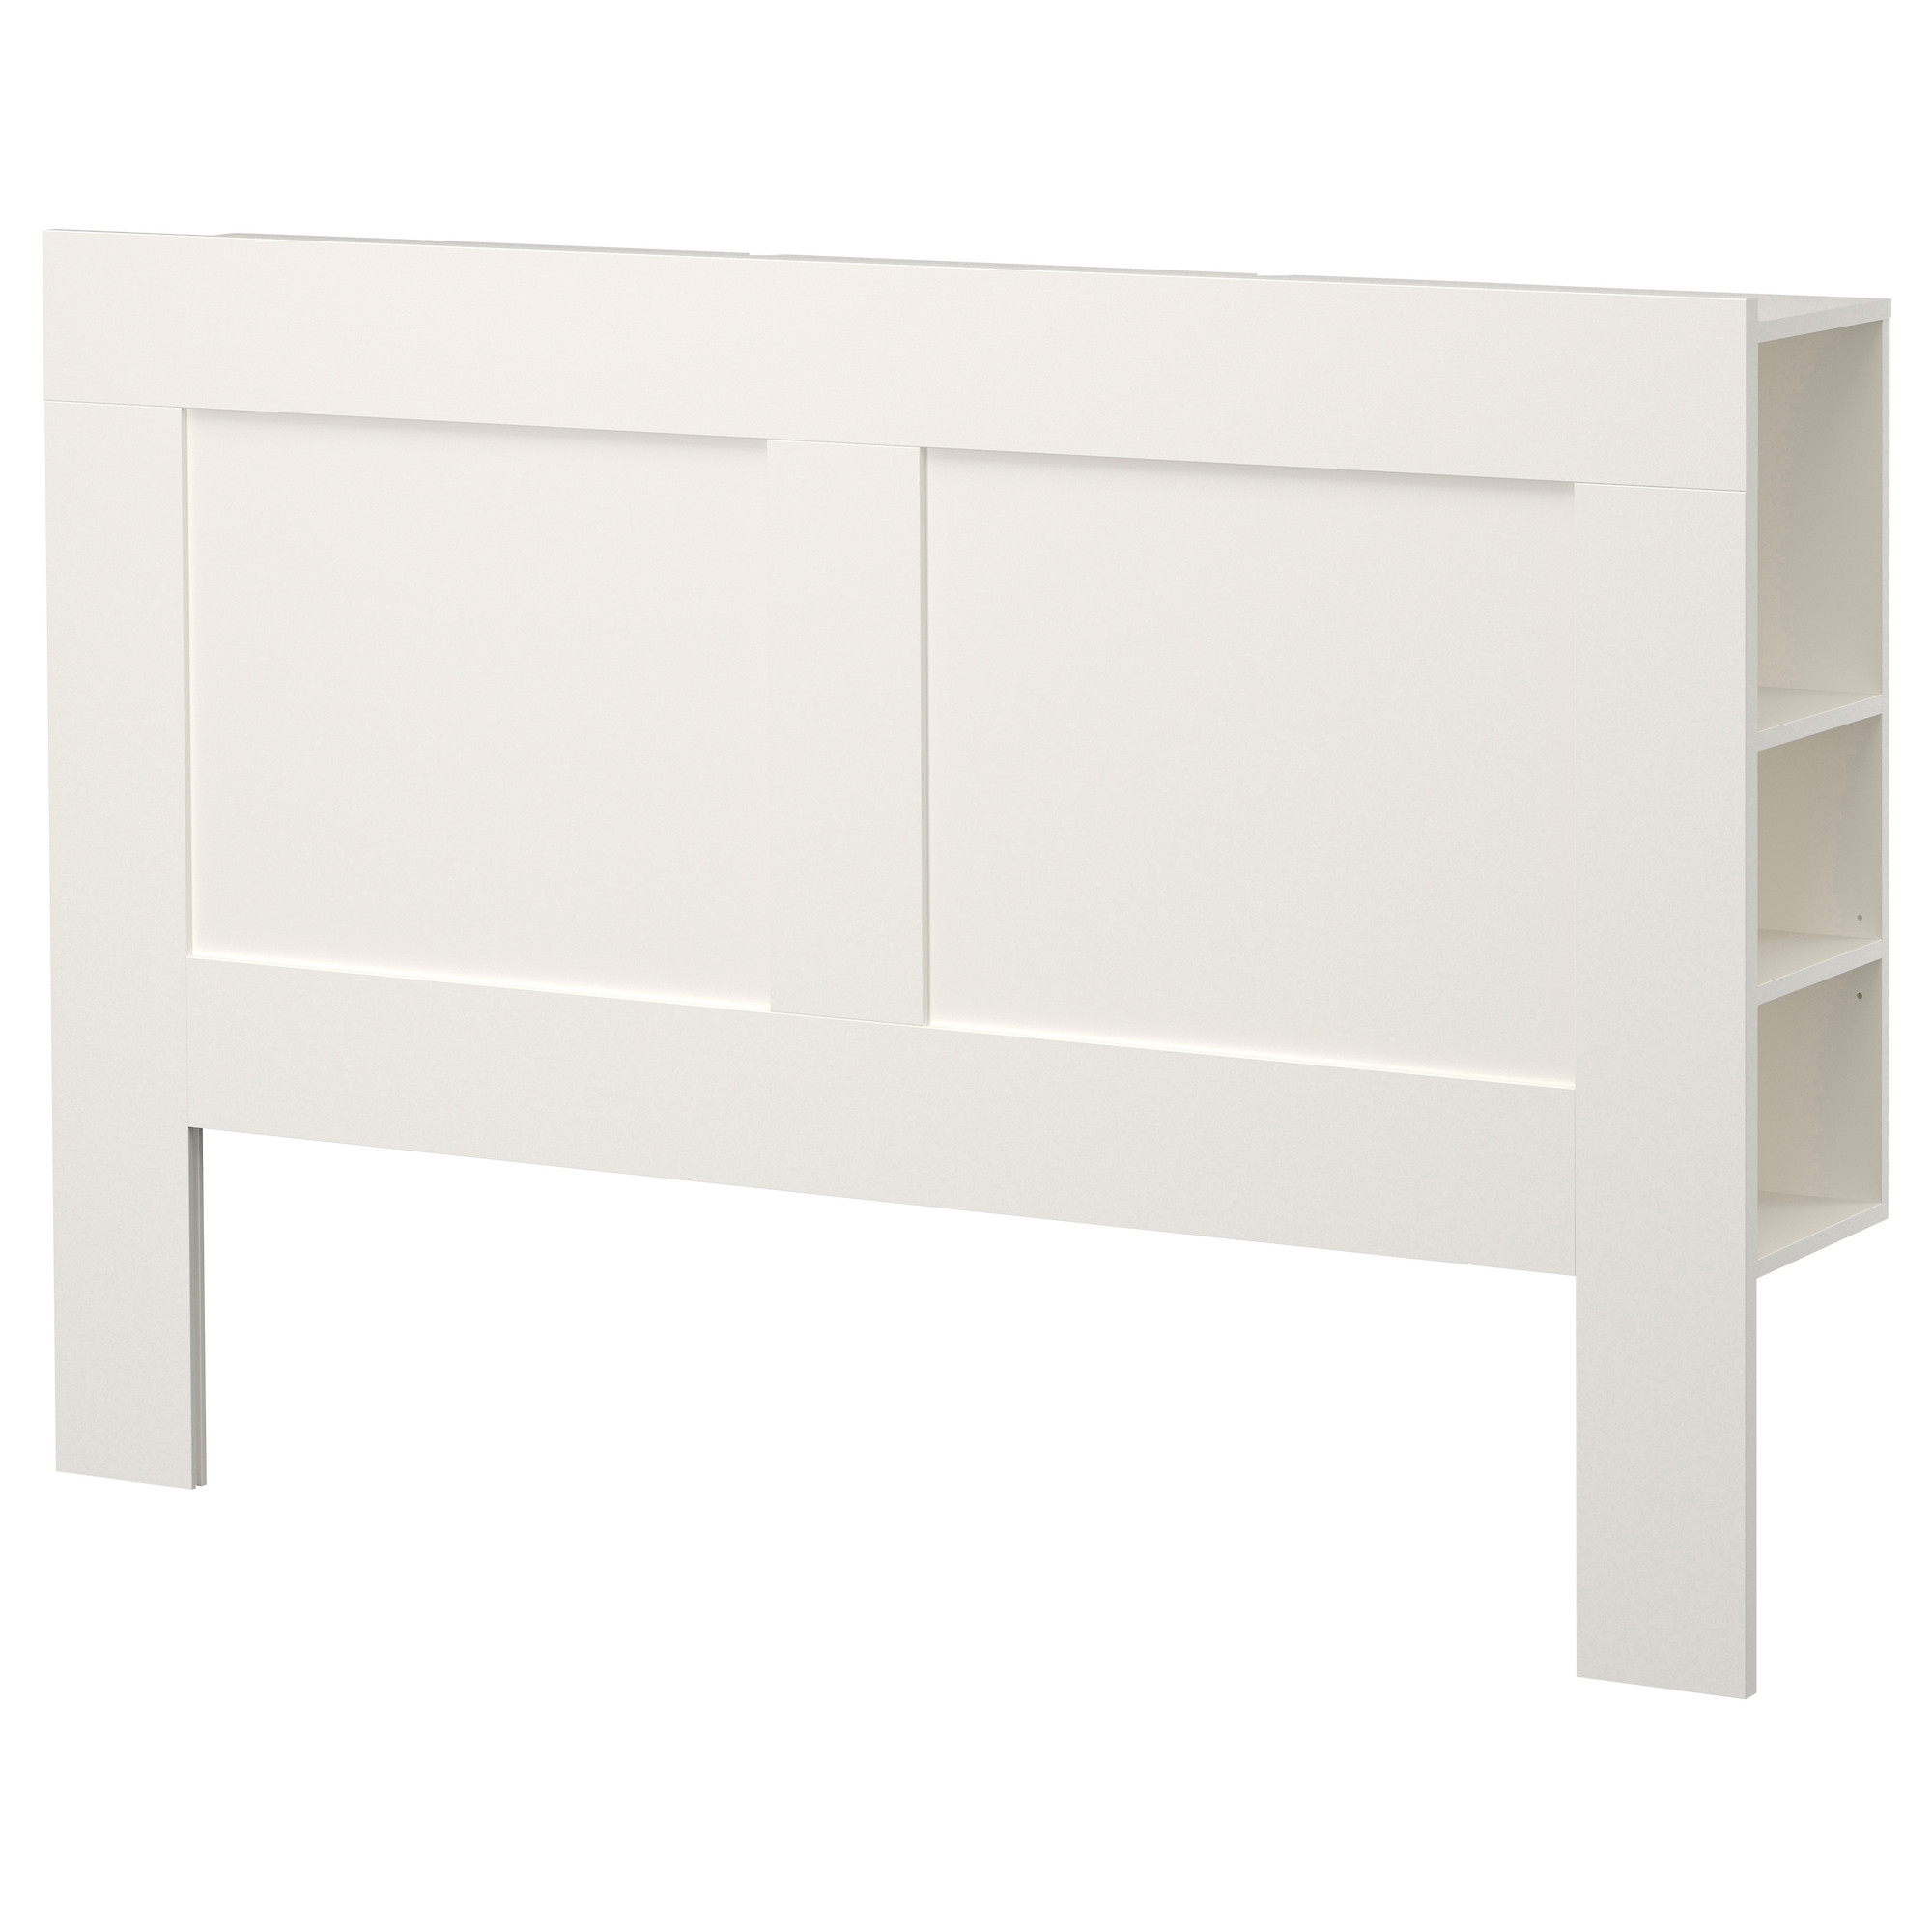 Headboard at ikea give your bedroom more storages and for Ikea shelf white